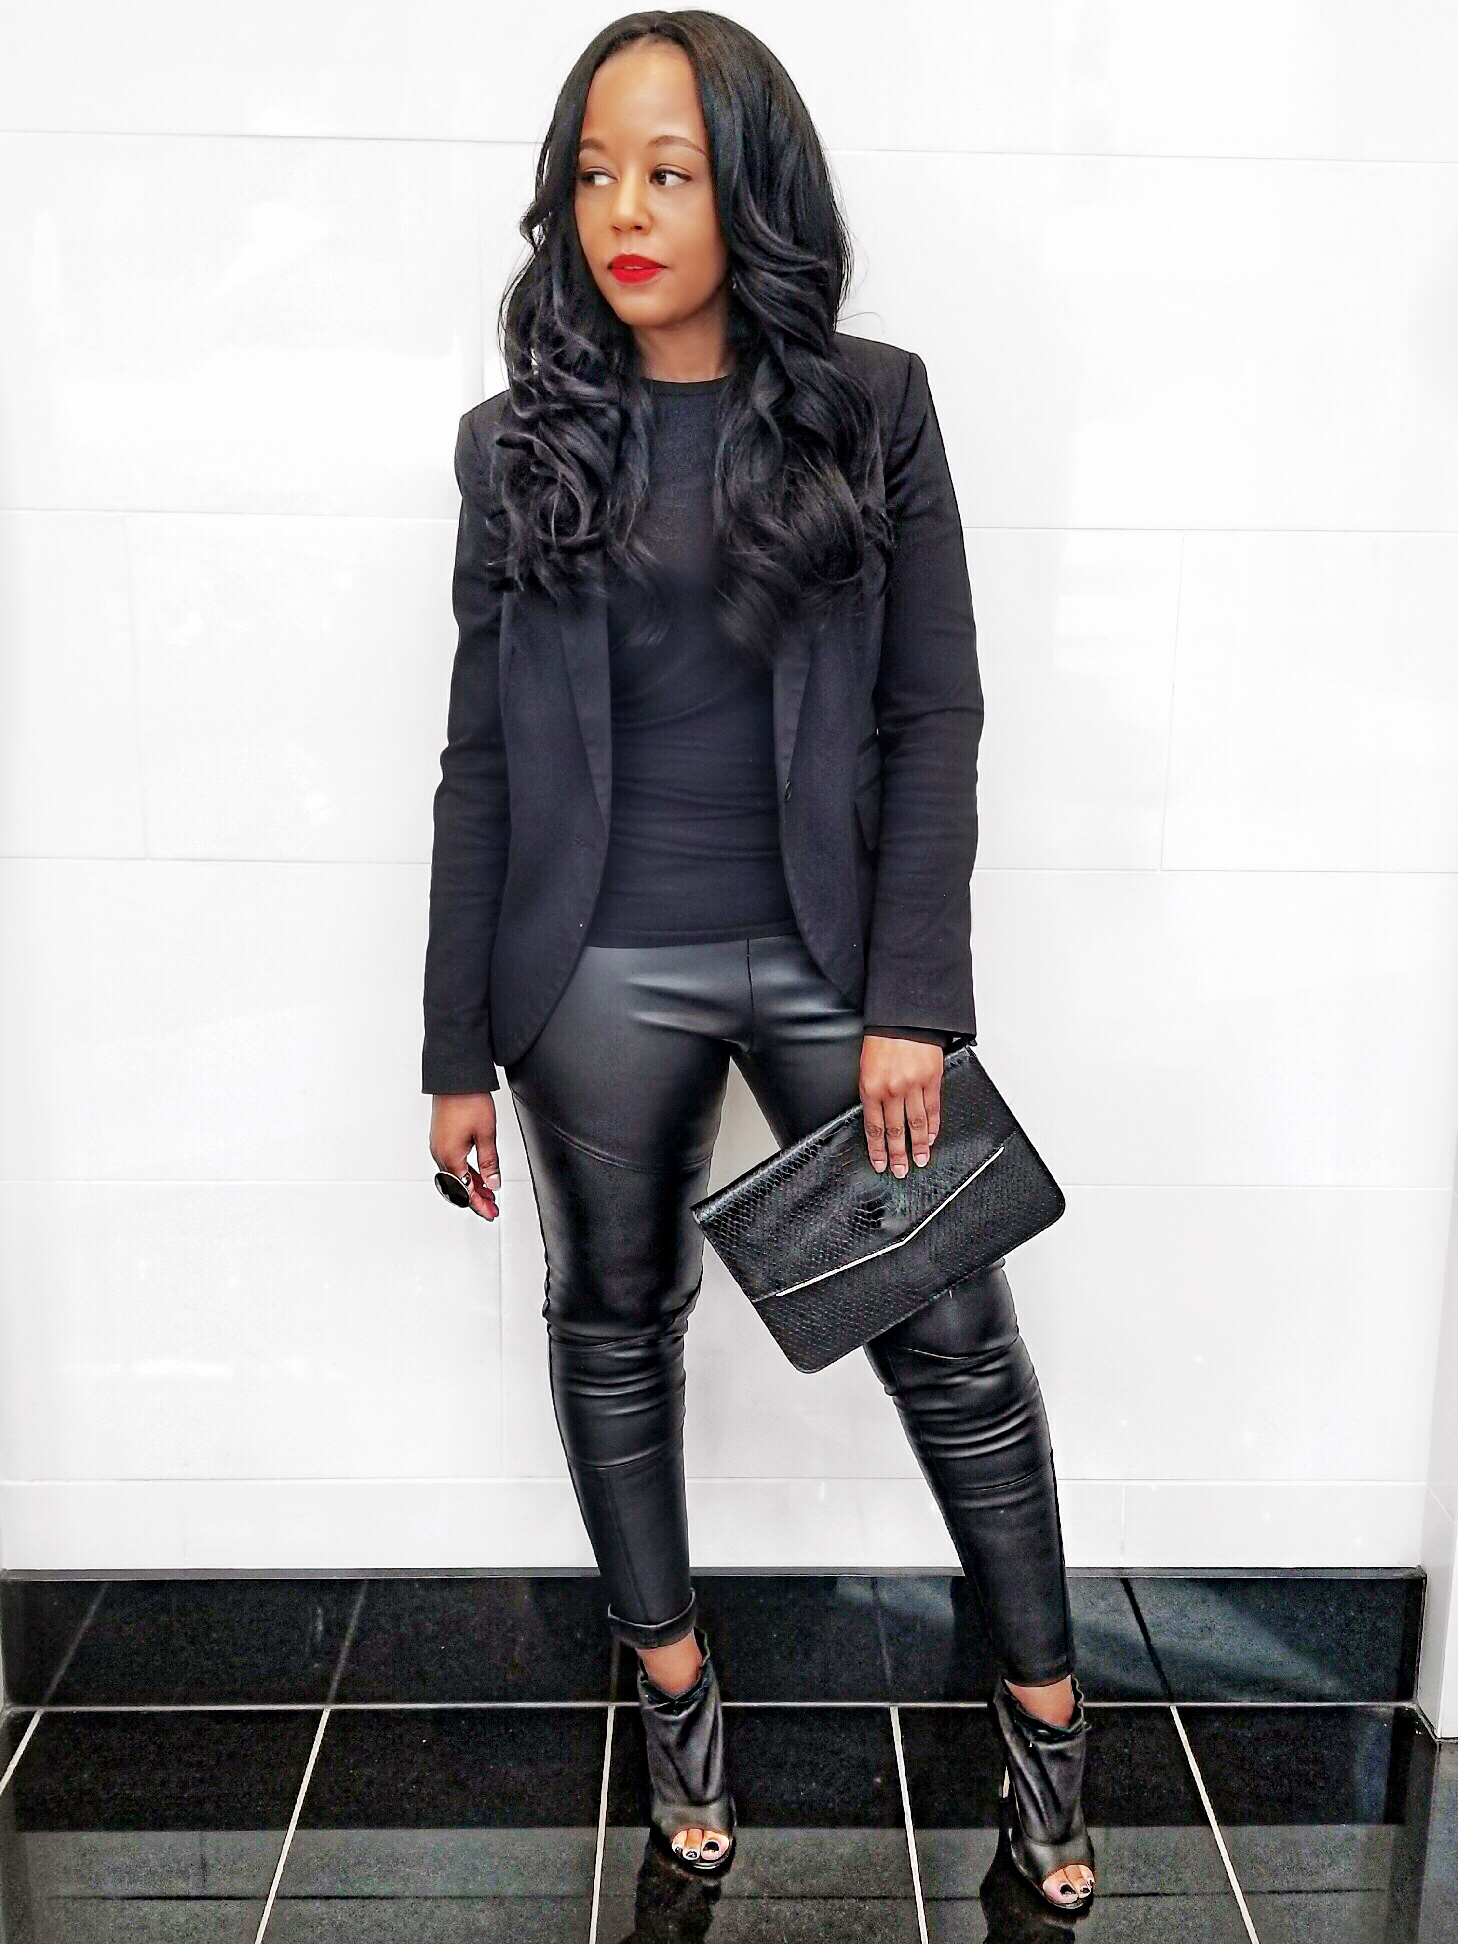 How-To-Style-An-All-Black-Outfit-Two-Ways